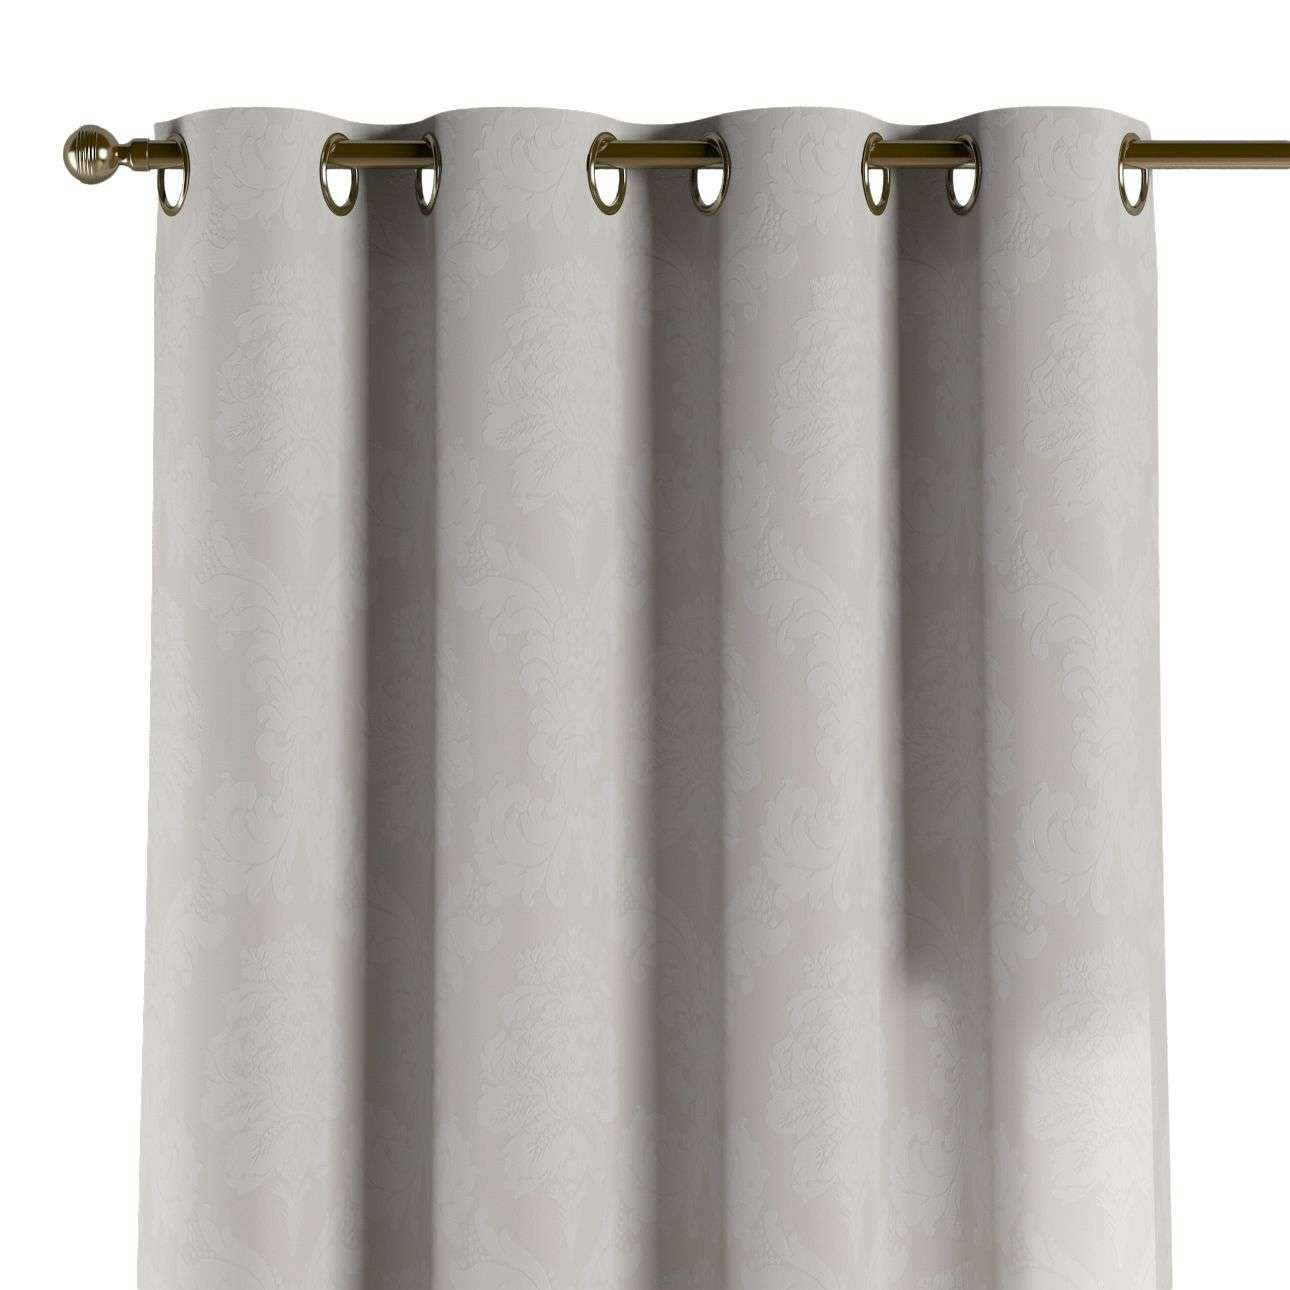 Eyelet curtains in collection Damasco, fabric: 613-81